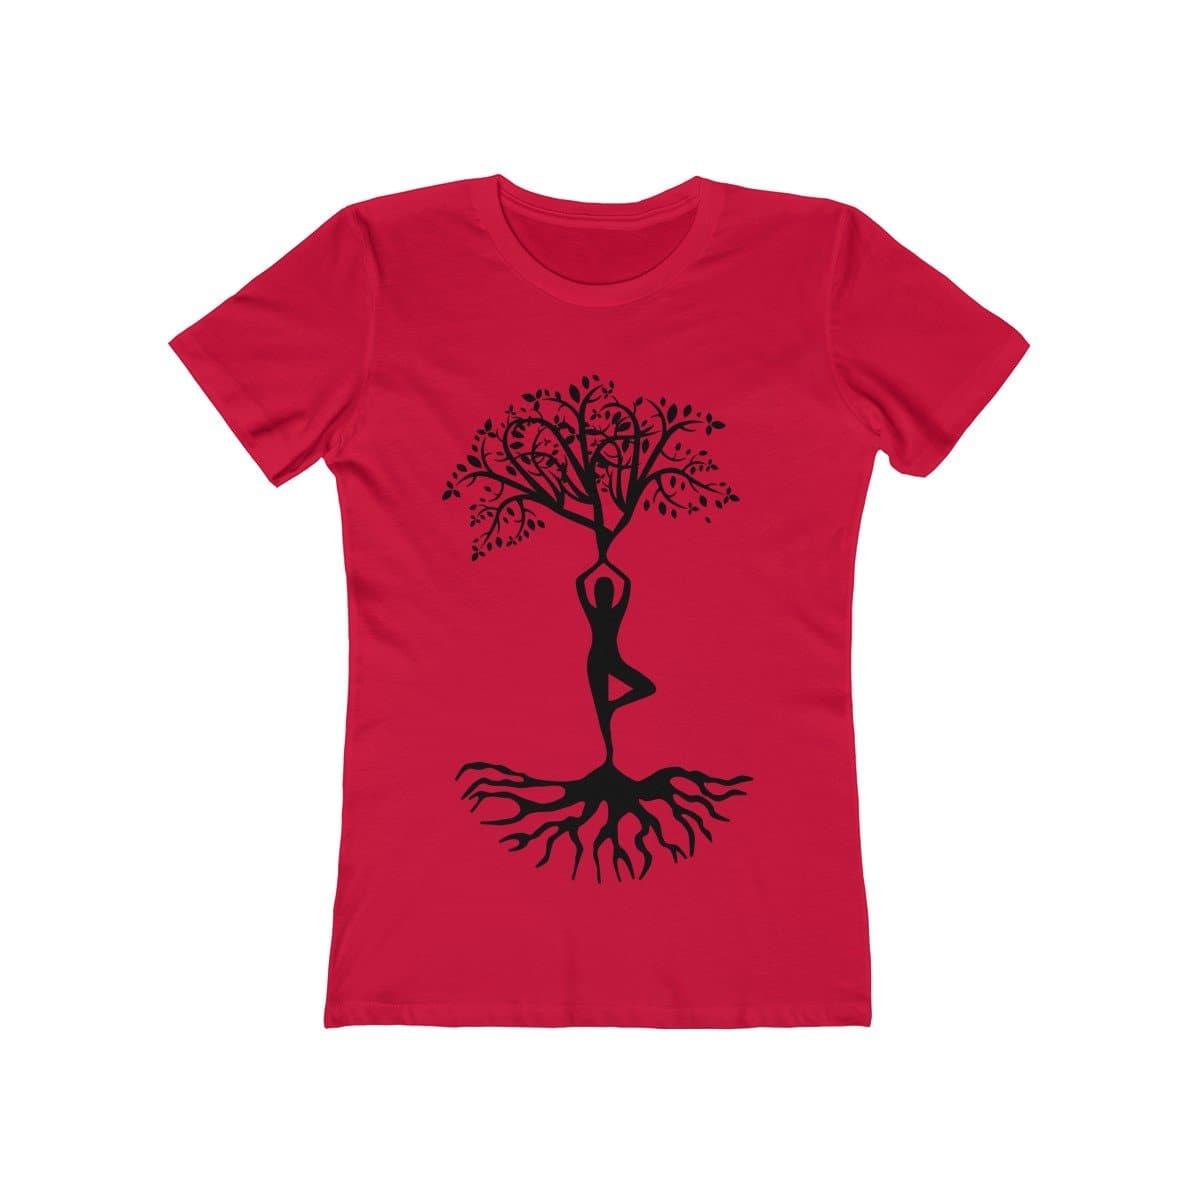 Yoga Tree Women's Tee - Sutra Wear